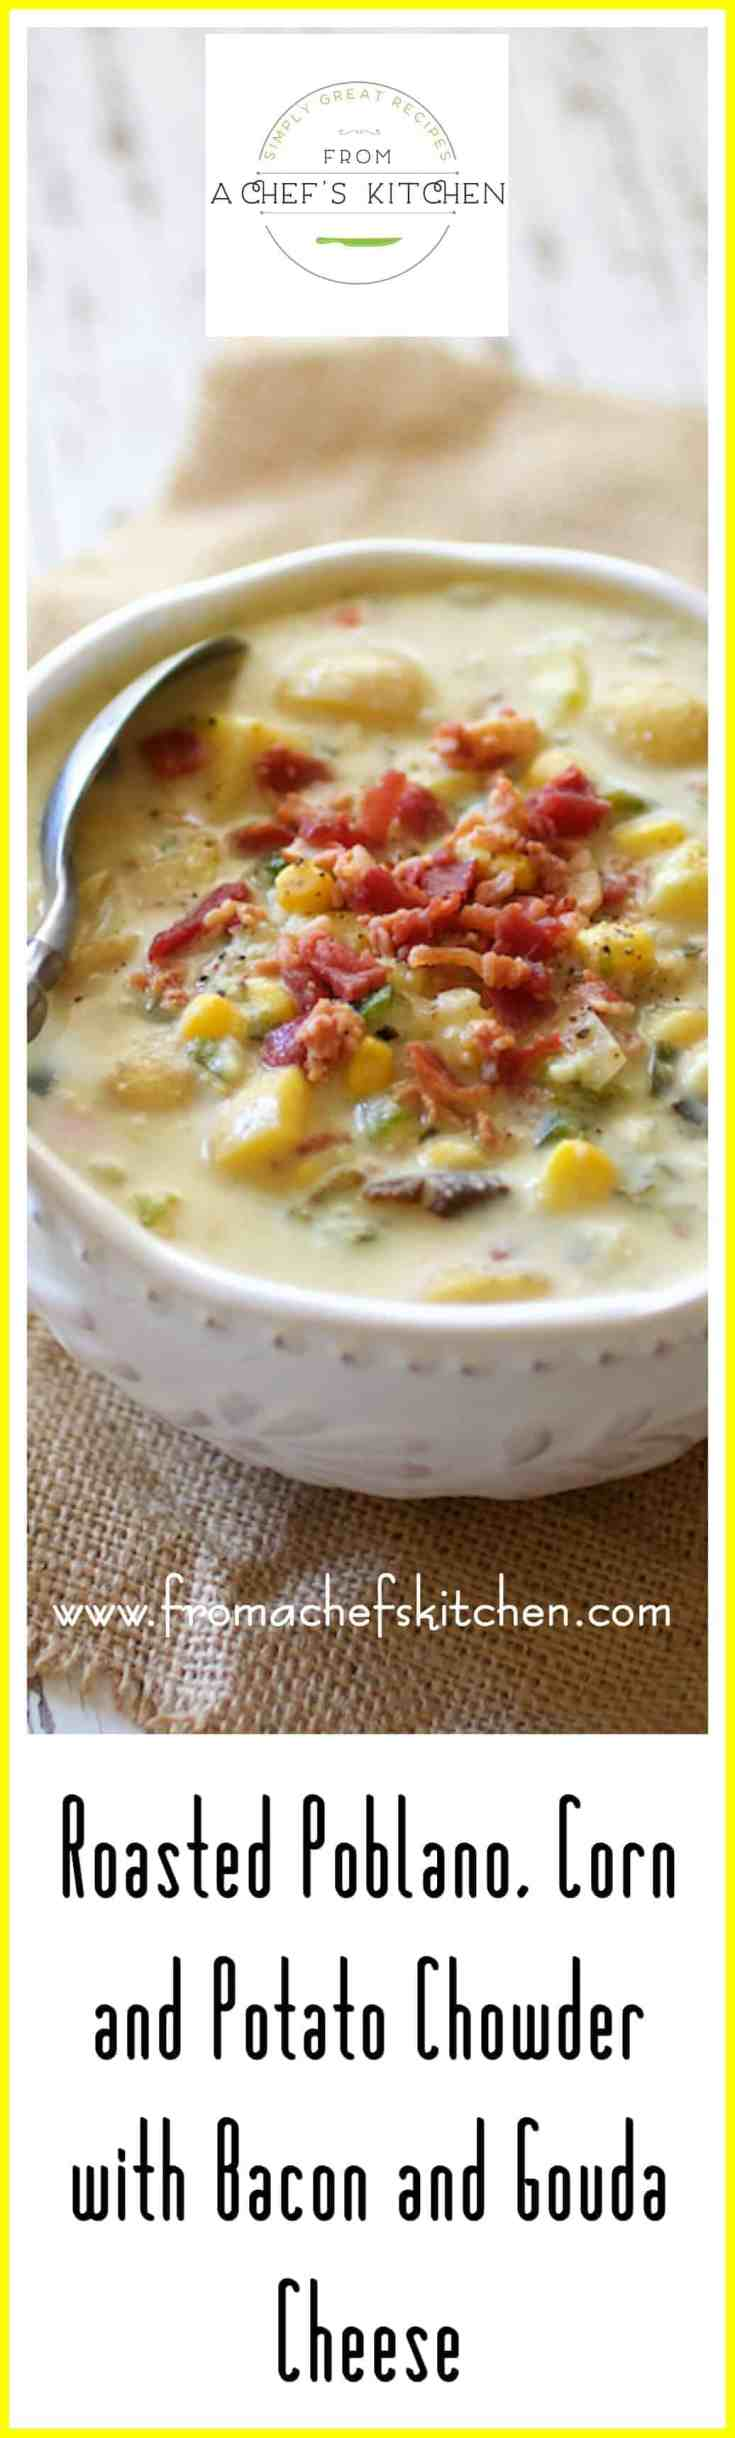 Roasted Poblano Corn and Potato Chowder with Bacon and Gouda Cheese is total comfort in a bowl!  This creamy chowder with smoky Poblano peppers, sweet corn, buttery Yukon gold potatoes, smoky bacon and Gouda cheese needs to be your go-to this fall and winter!  #soup #stew #chowder #potatosoup #poblano #corn #bacon